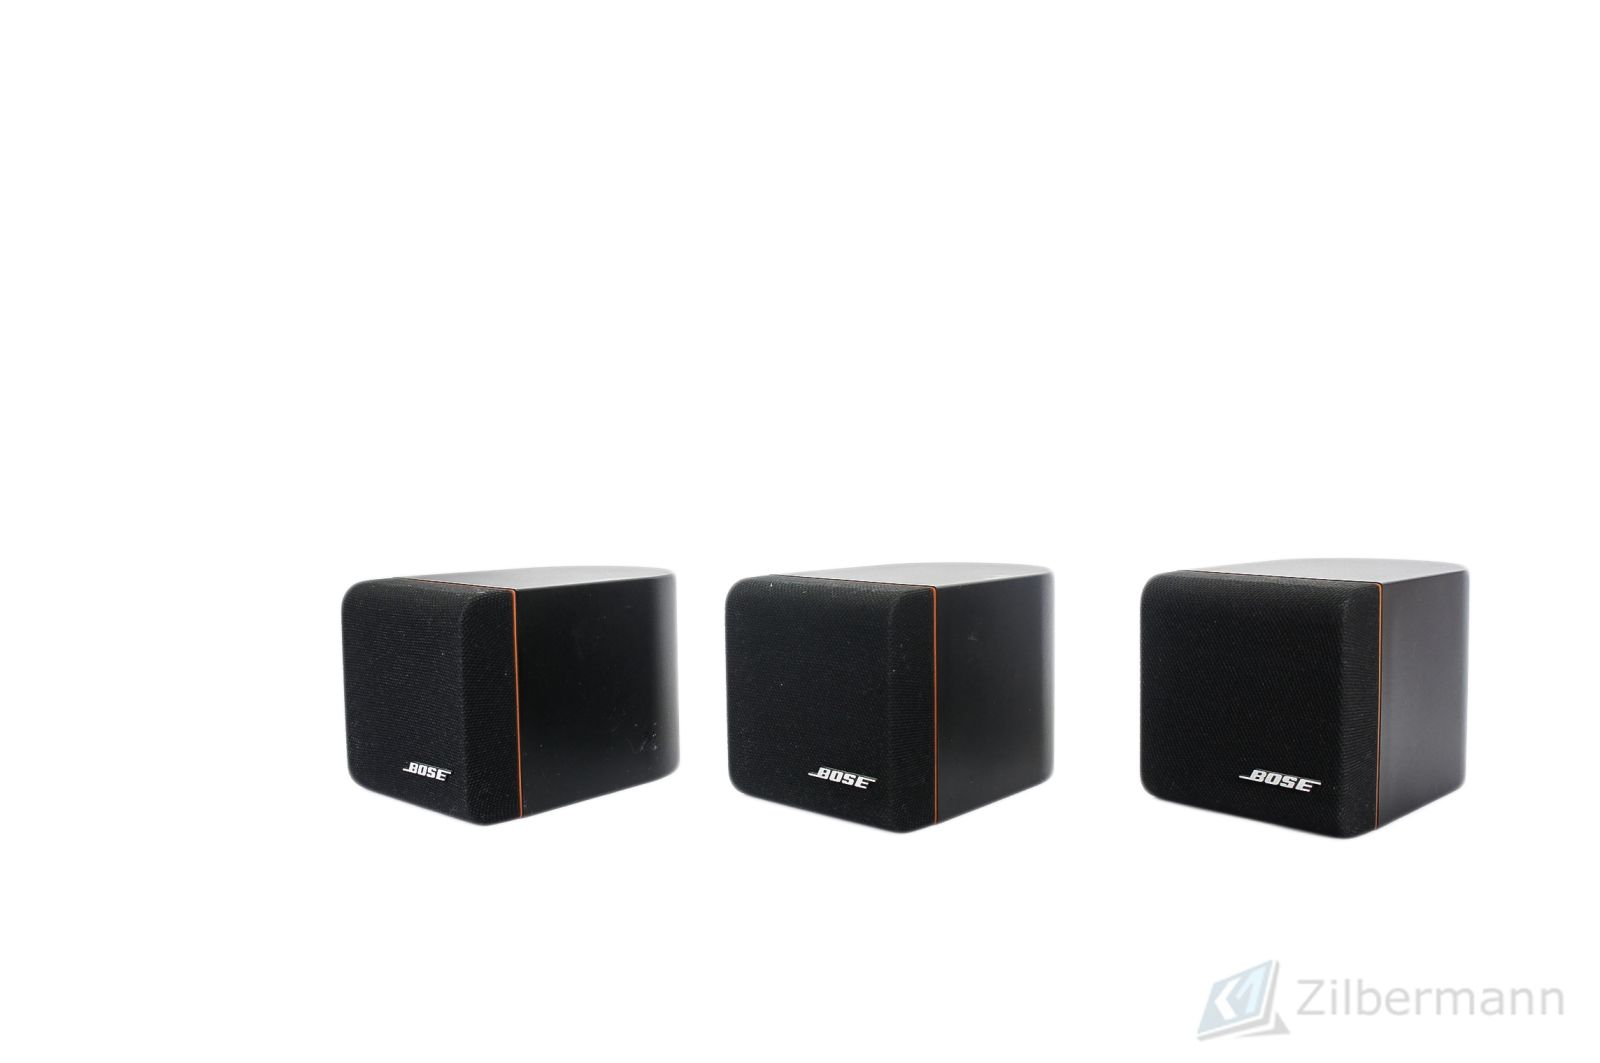 Bose_Acoustimass_4_Heimkino-system_08_6A0fG2x